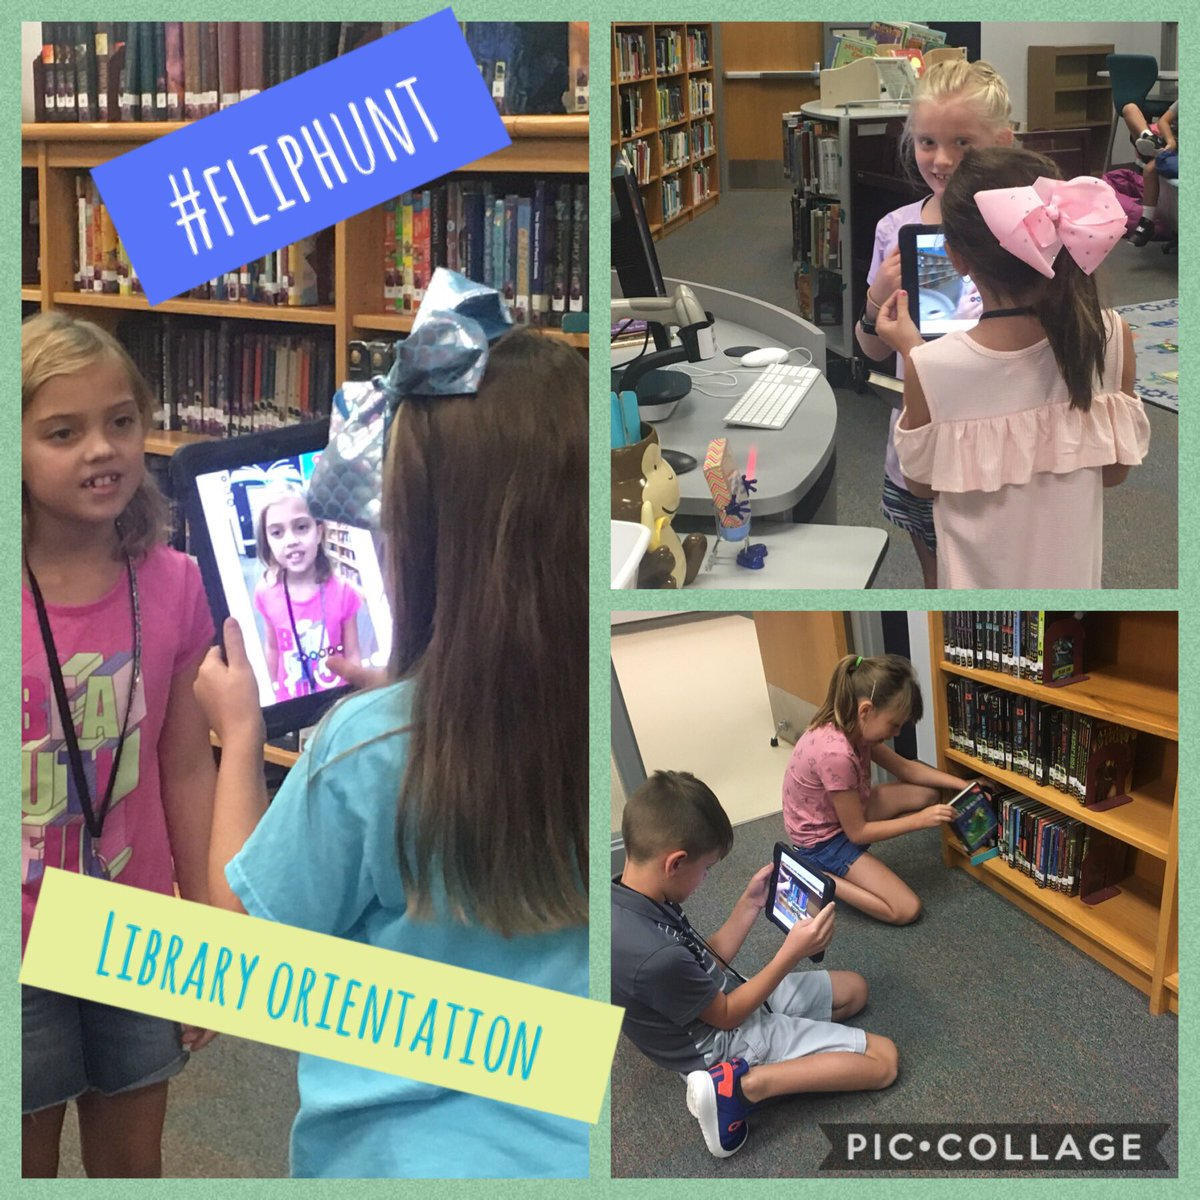 Ss on a #fliphunt for Library Orientation. Reviewing rules and having fun! #MISDProud @Flipgrid @MtPeak_Elem